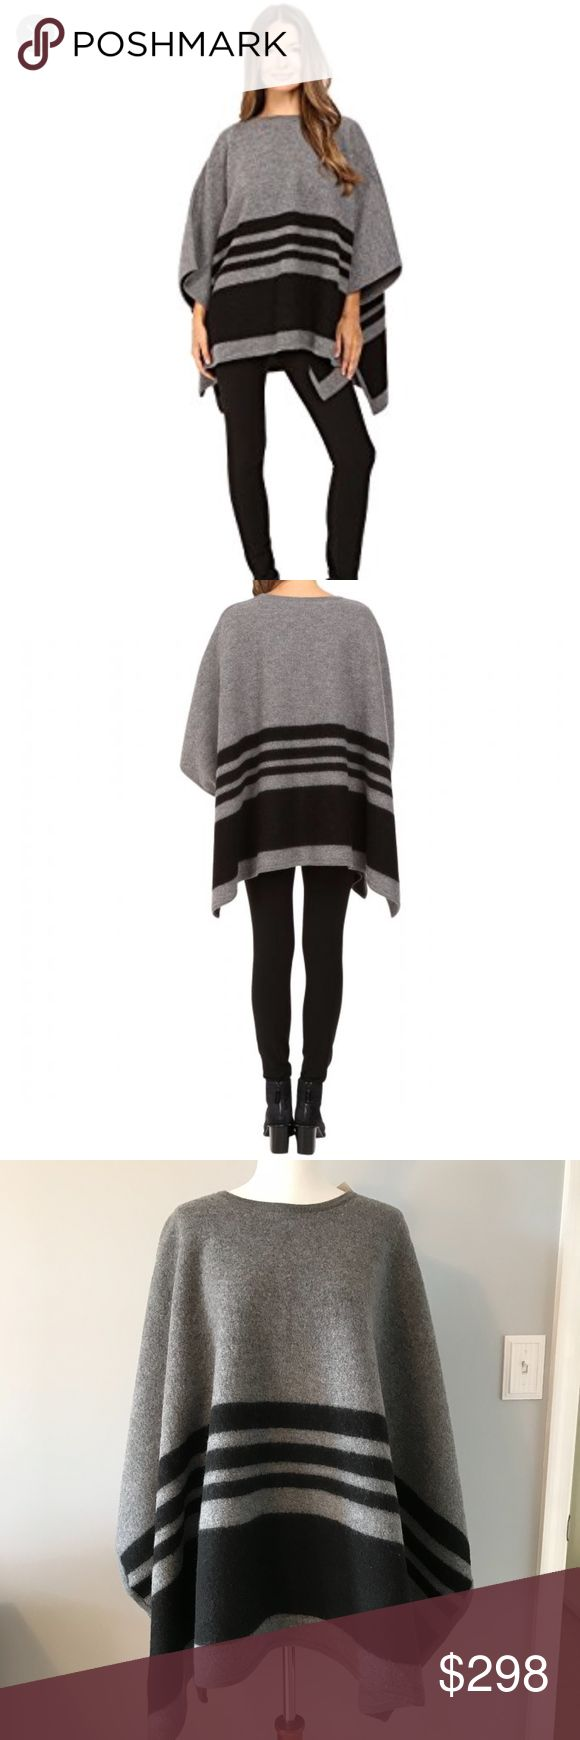 Kate Spade Melange Poncho *NWT* Broome Street poncho in brushed sweater knit - 100% merino wool.  Very versatile, wear with black leggings, jeans or your favorite denim and pair with black booties or boots. kate spade Sweaters Shrugs & Ponchos